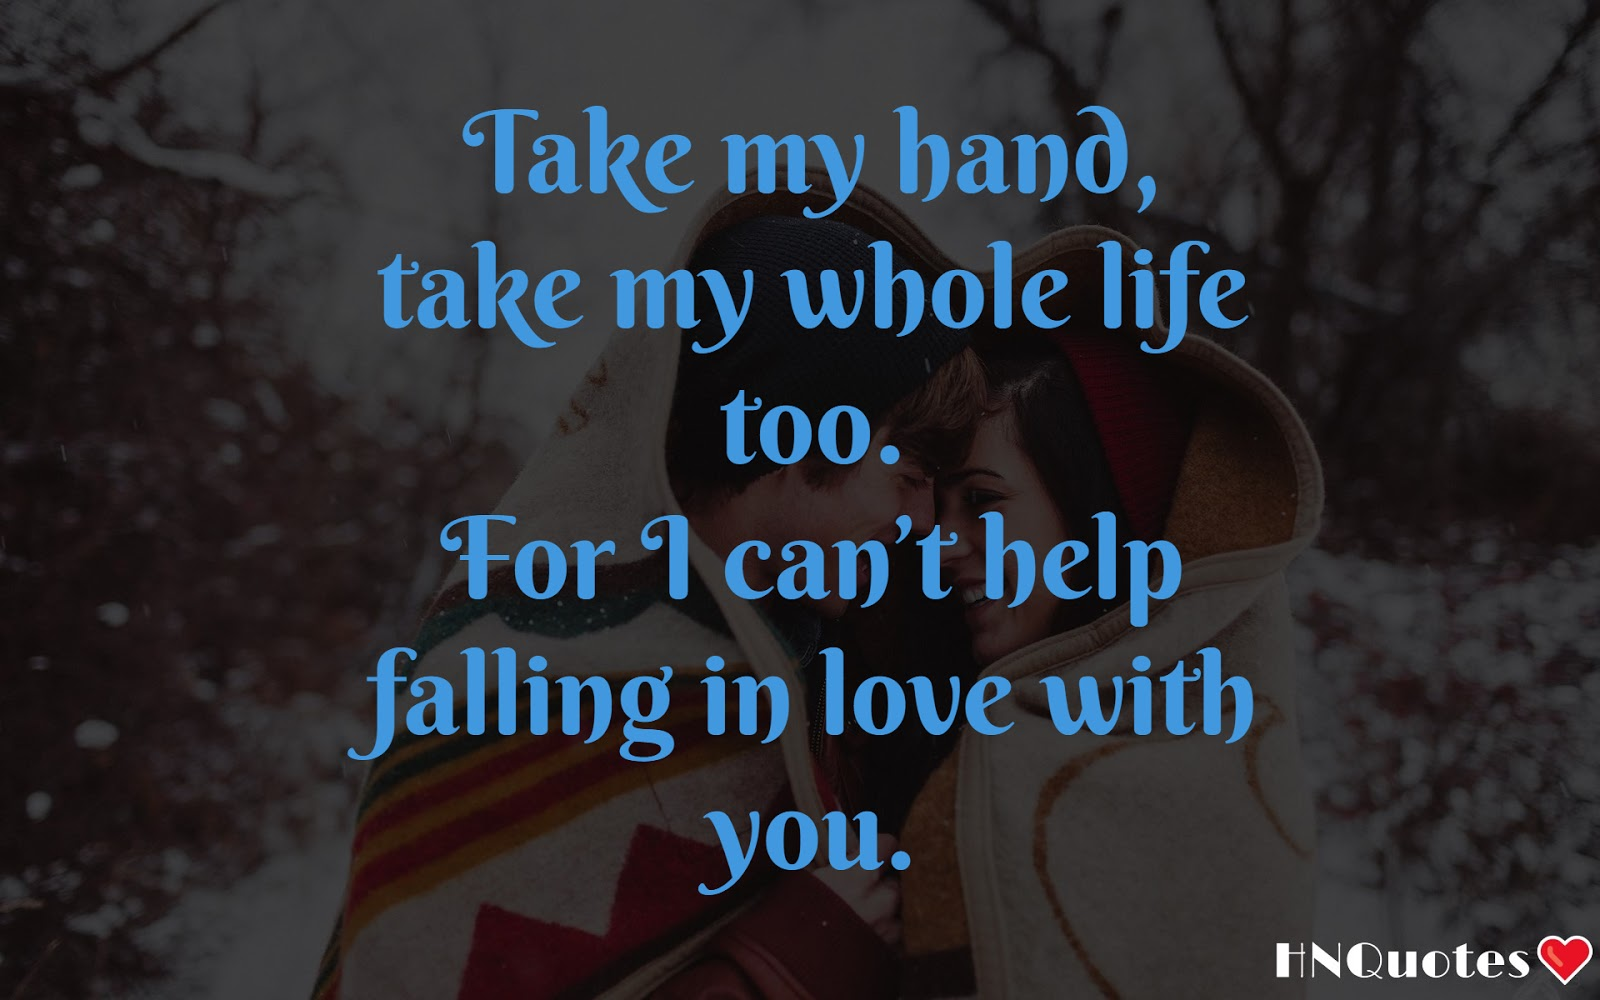 Romantic-Quotes-about-Love-Forever-I-Love-You-70-[HNQuotes]